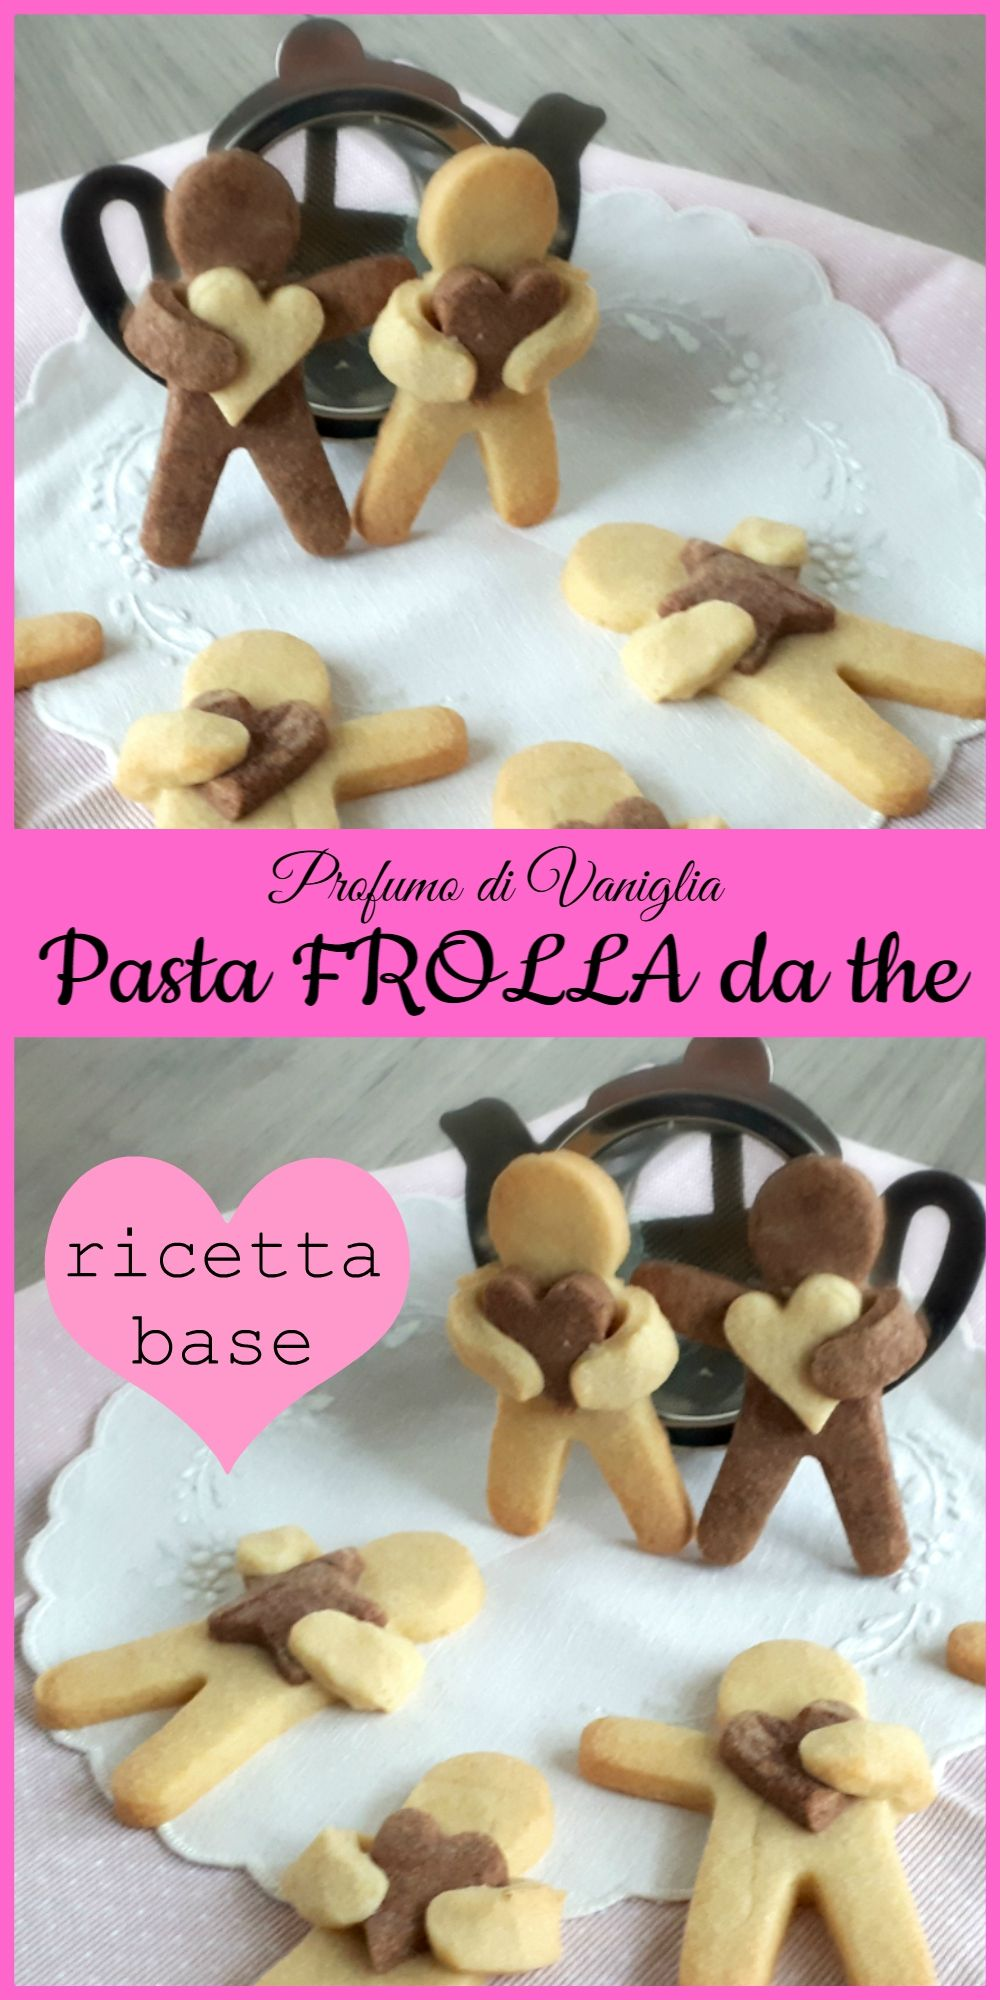 Pasta FROLLA da the – ricetta base #food